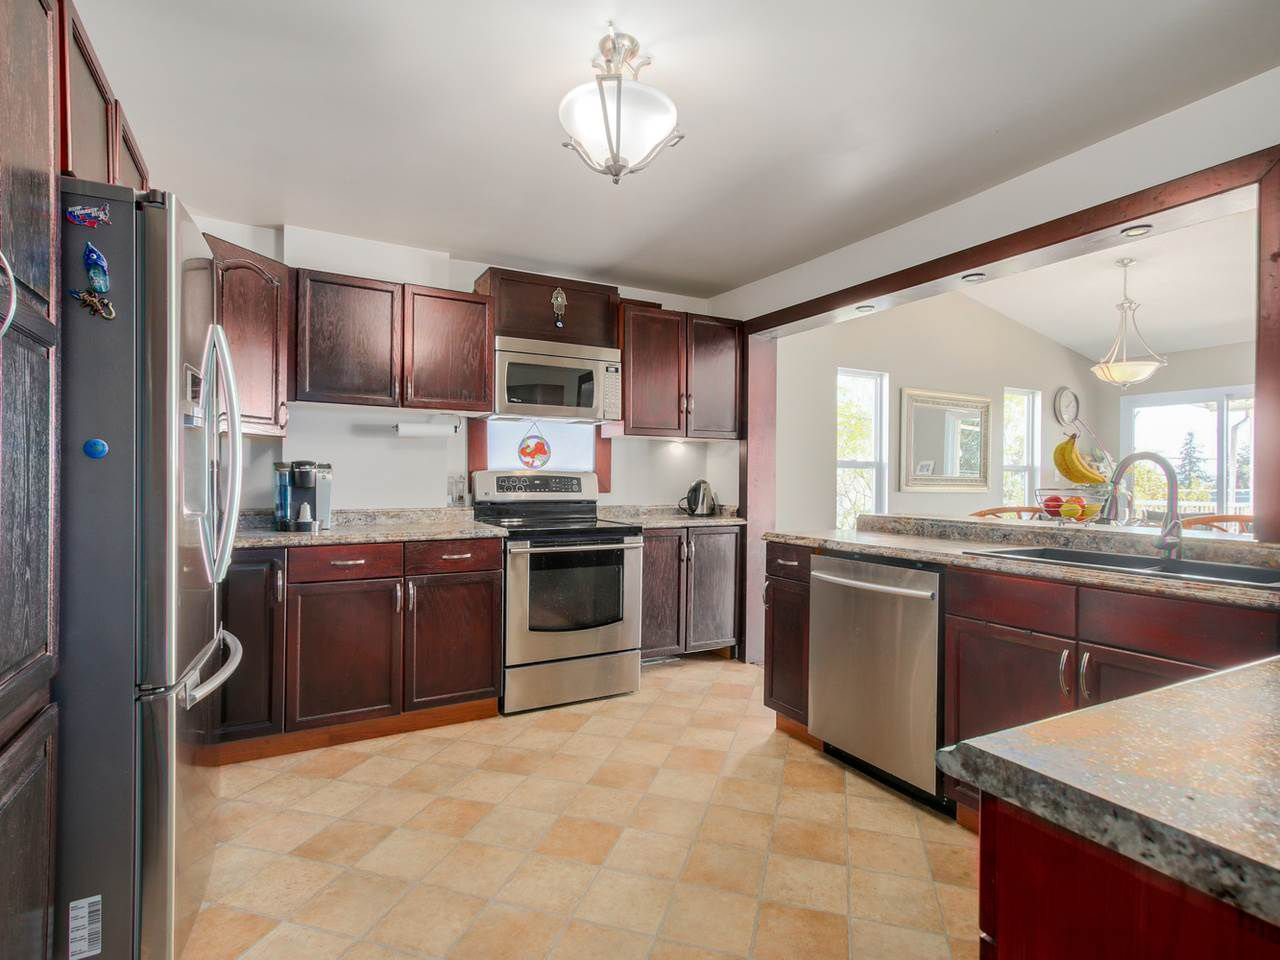 Photo 9: Photos: 449 E 5TH Street in North Vancouver: Lower Lonsdale House for sale : MLS®# R2056647